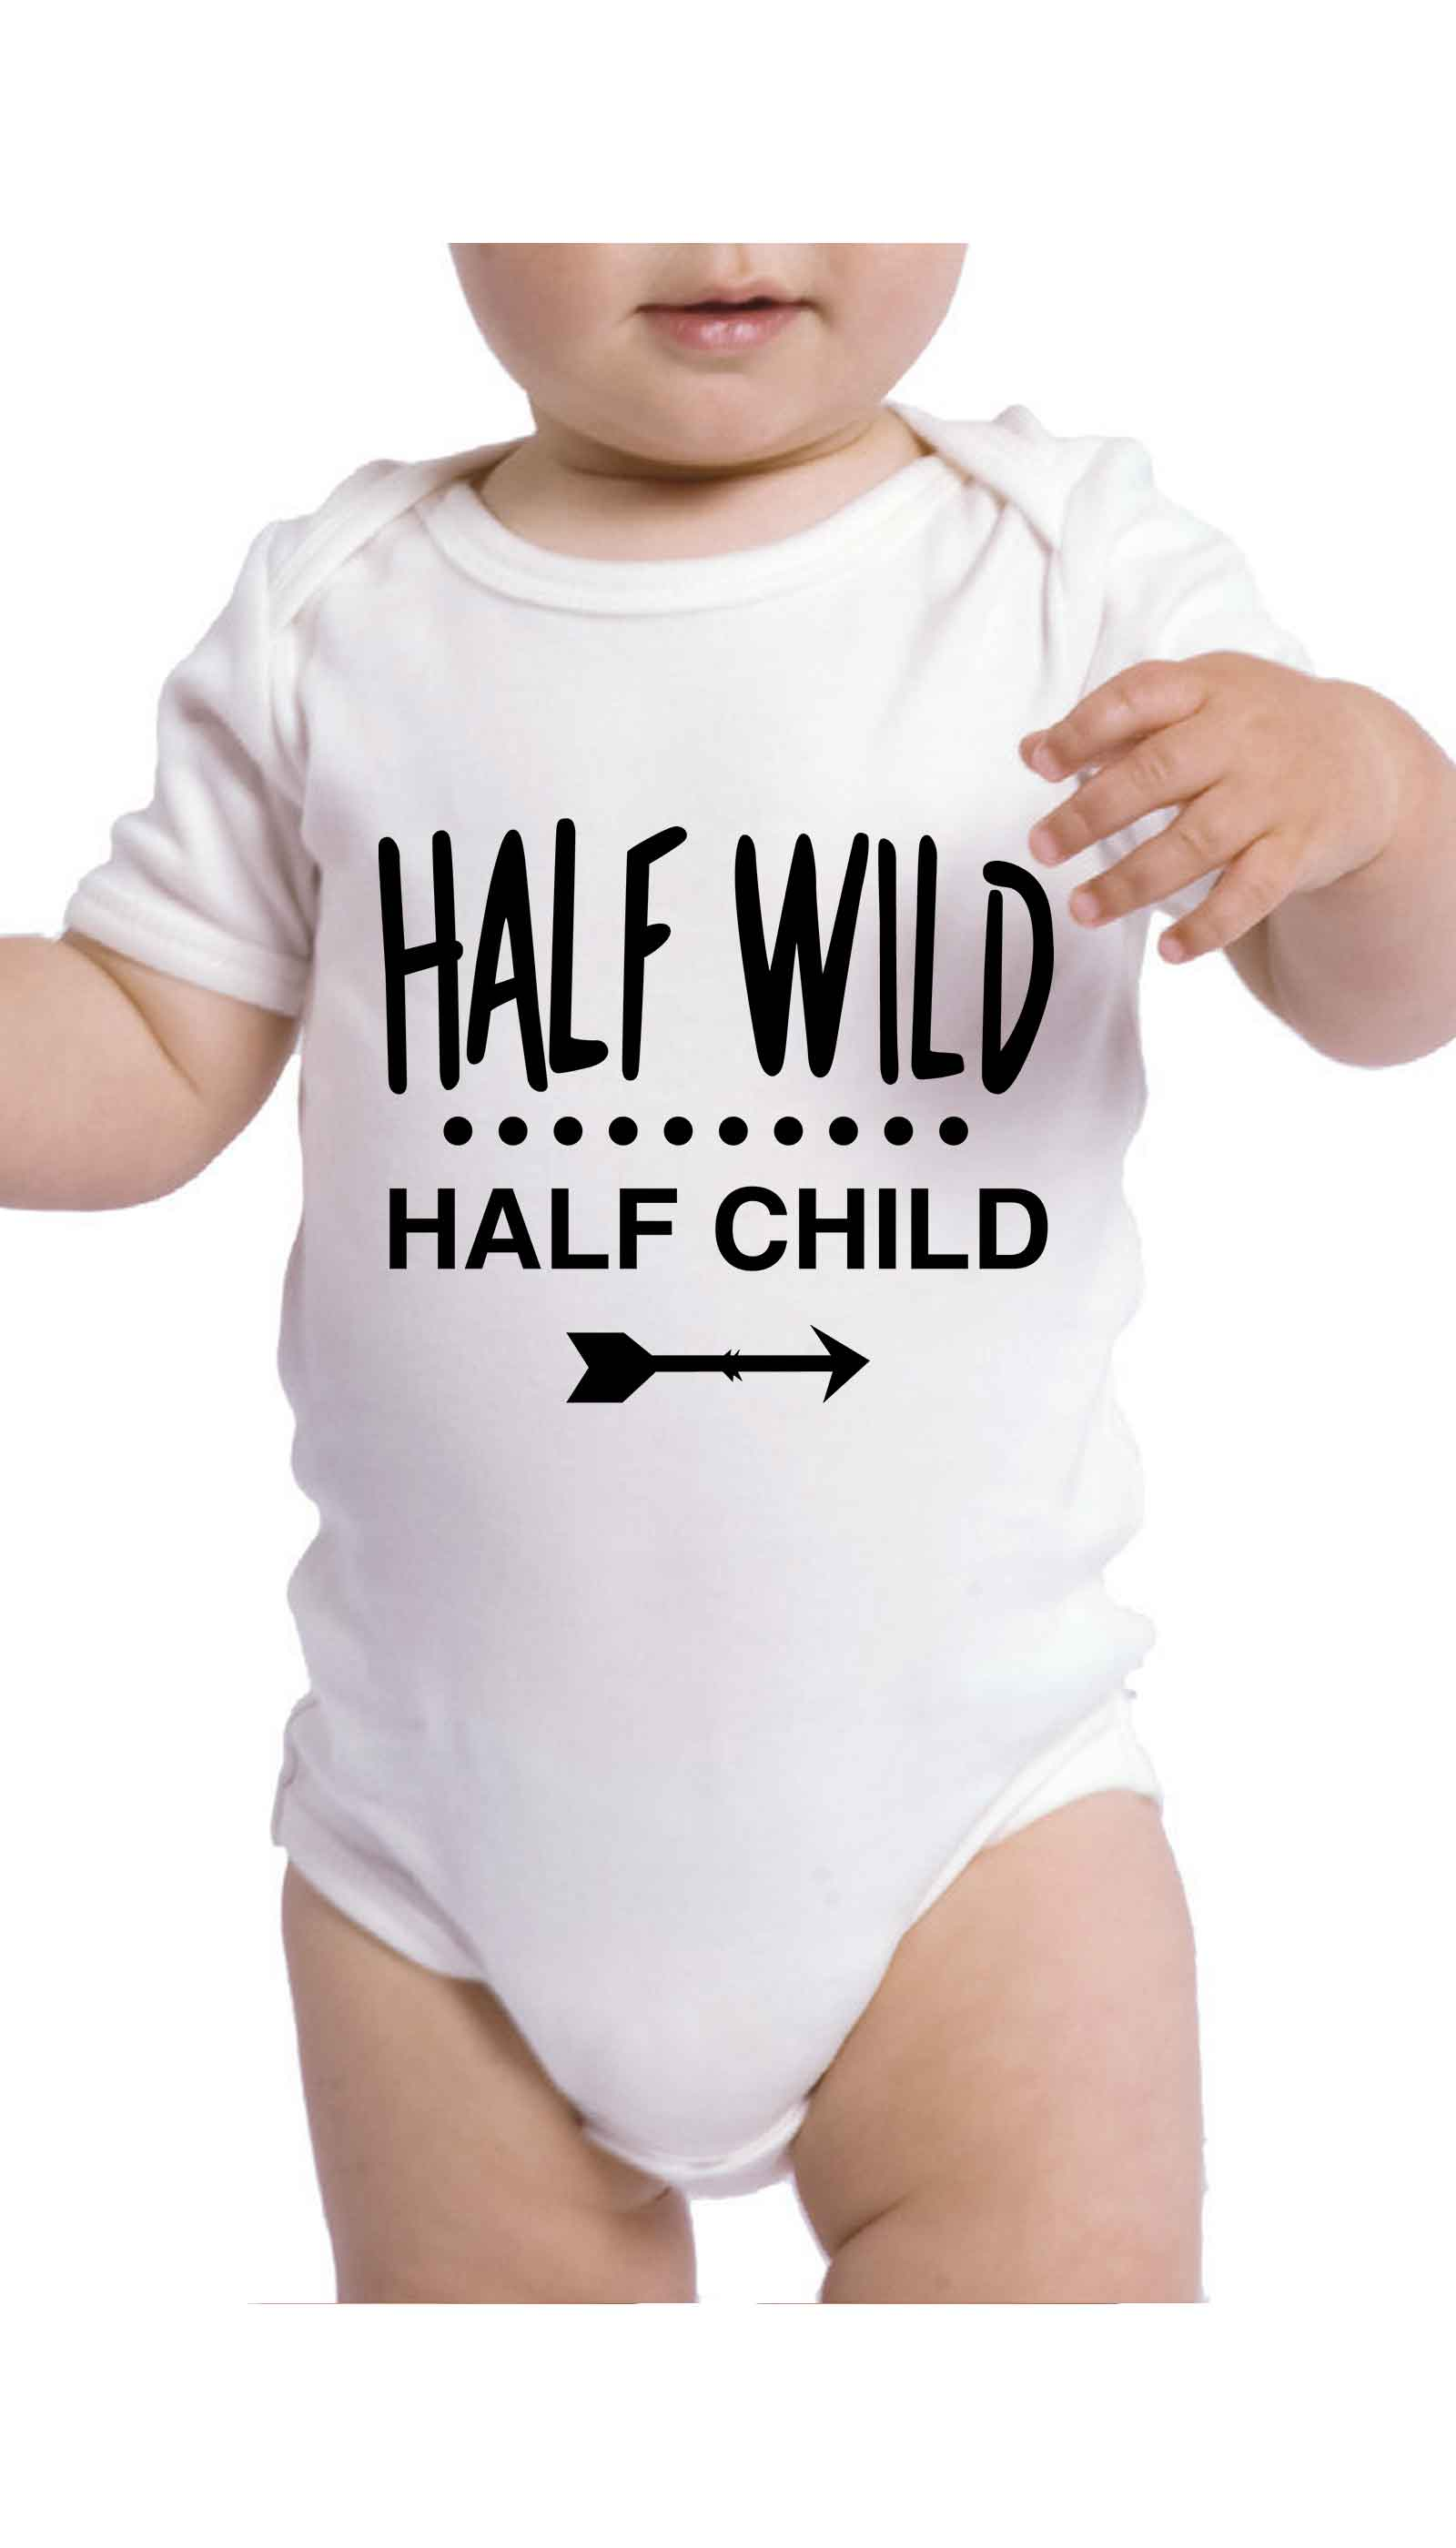 Half Wild Half Child Cute & Funny Baby Infant Onesie | Sarcastic ME